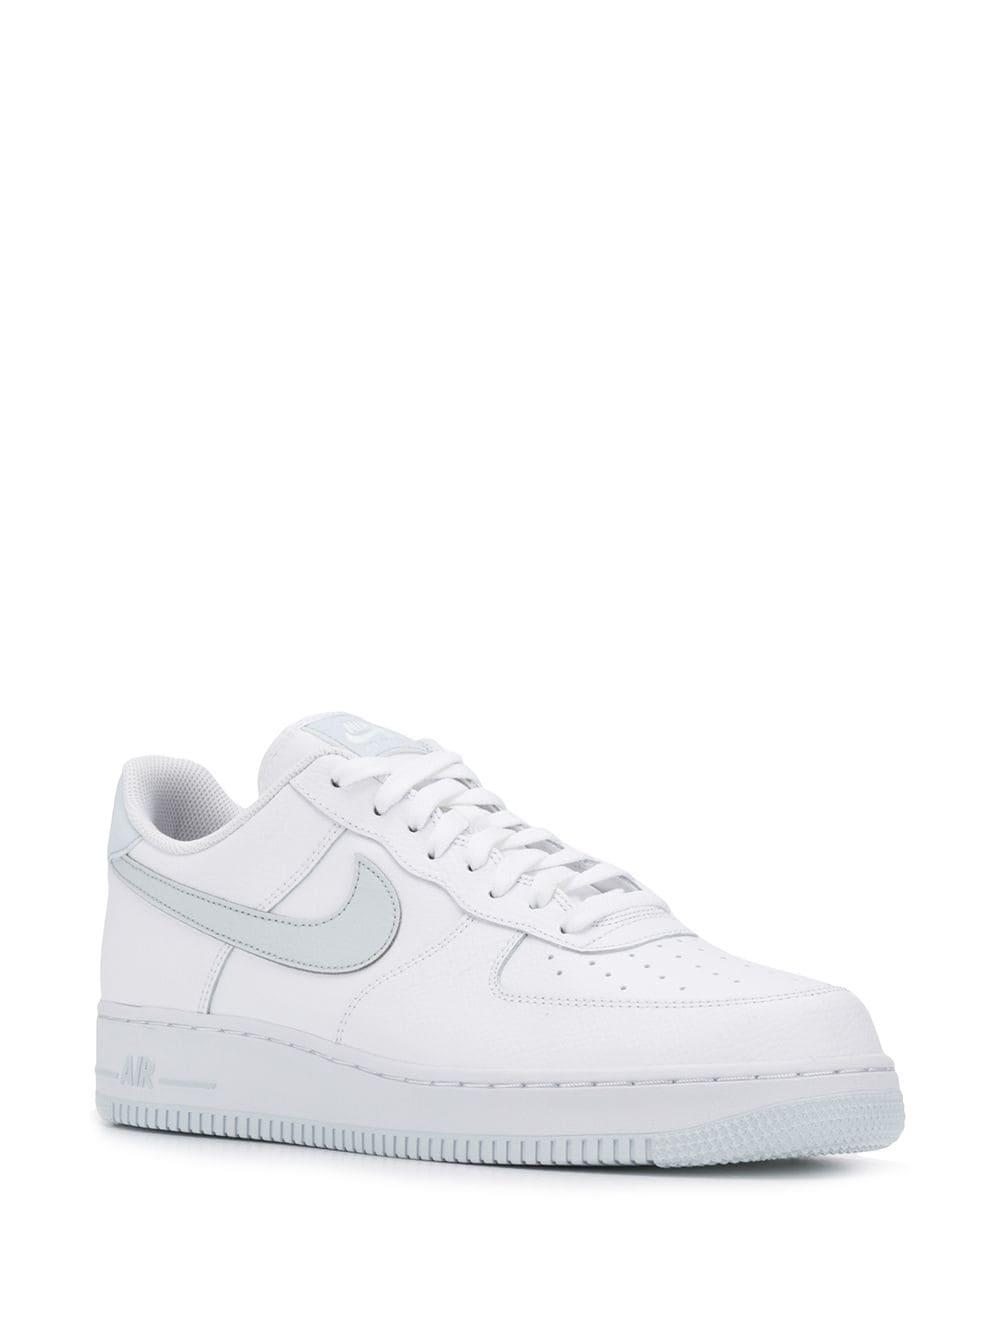 Lyst Nike Air Force 1 Sneakers in White for Men